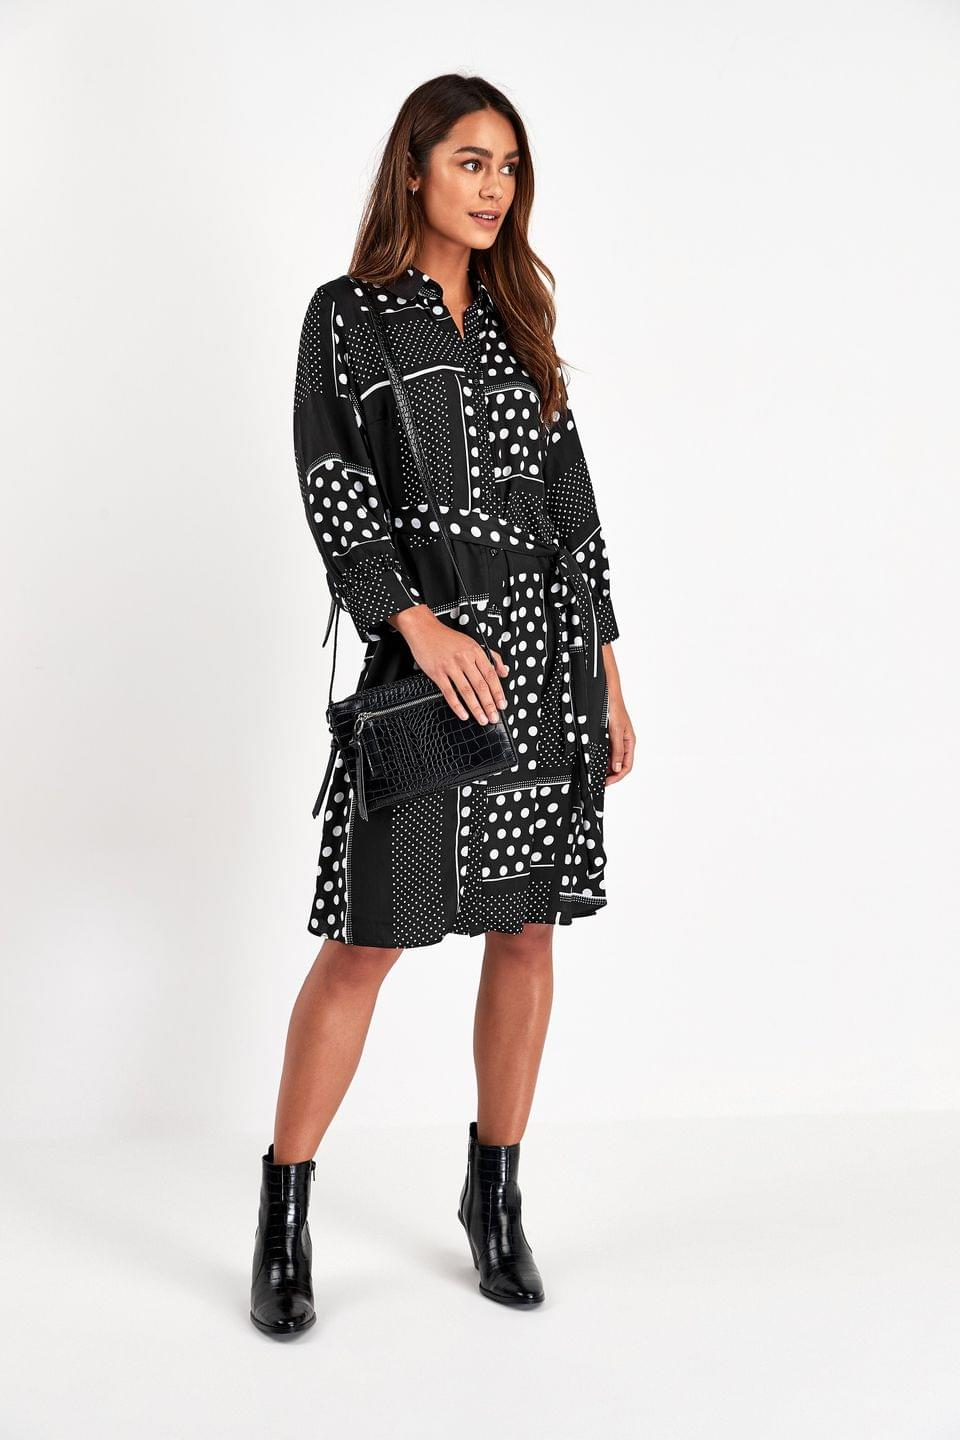 Women's Black/White Shirt Dress